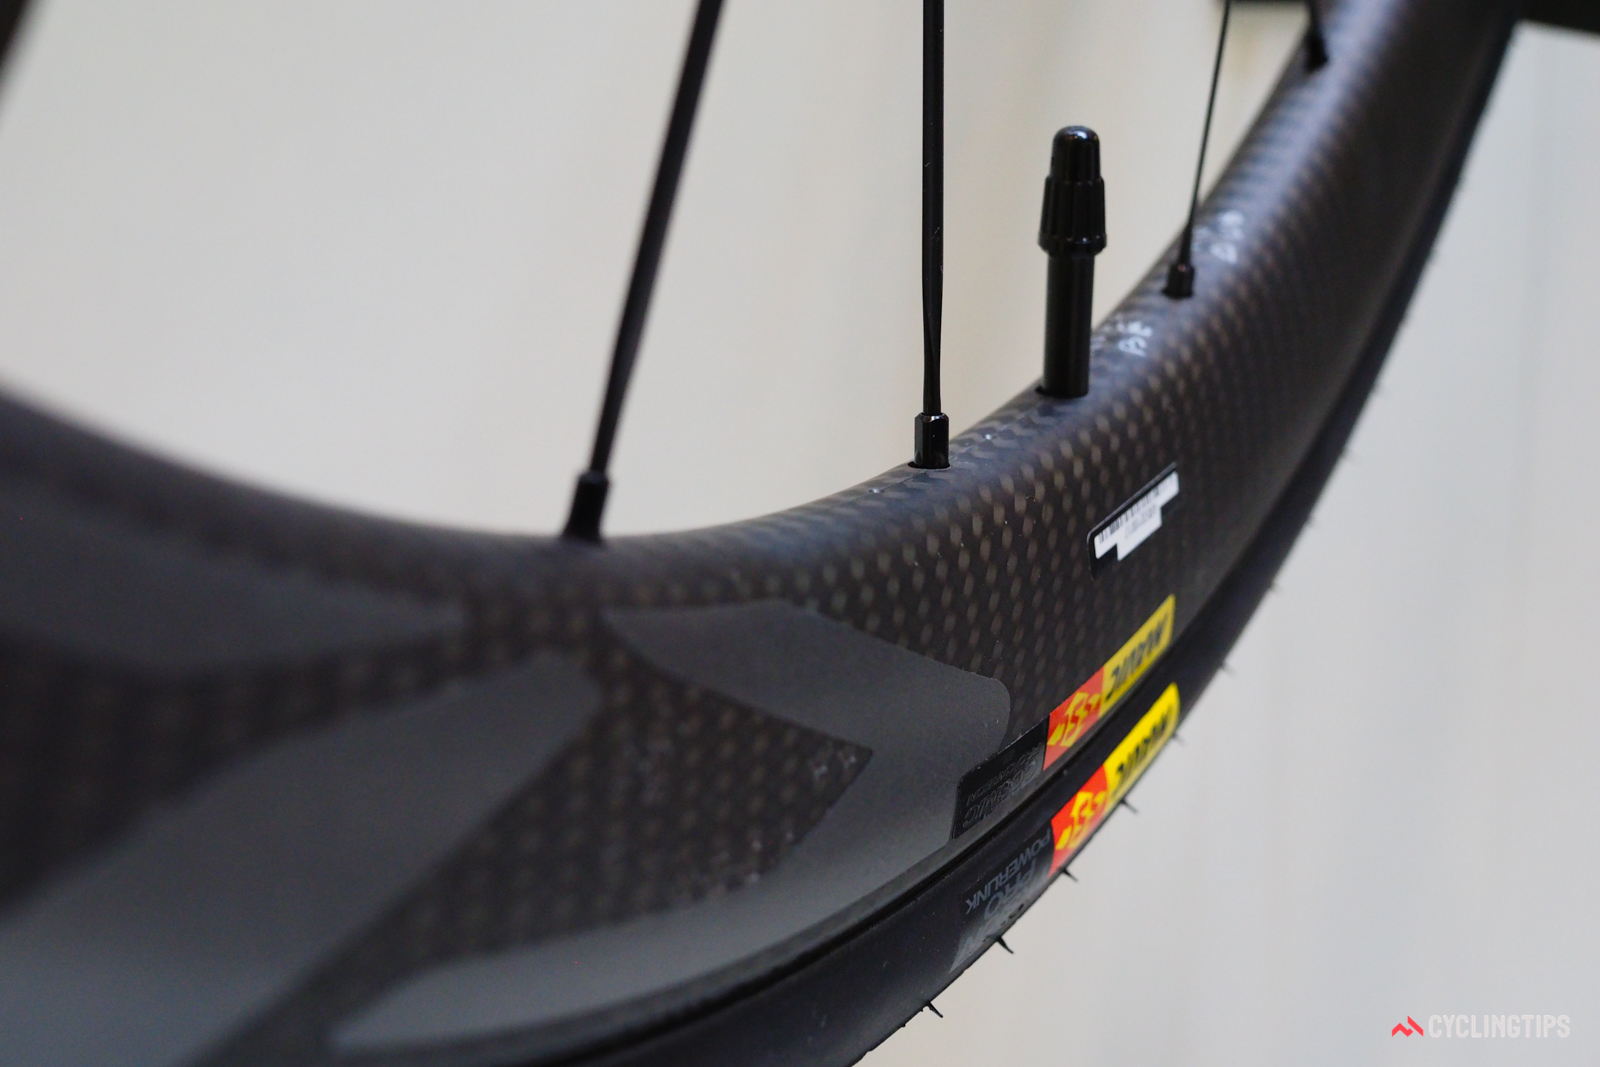 Along with the wider rim widths come more blunted aero rim profiles, which should perform better in crosswinds than the aging shapes Mavic used previously.